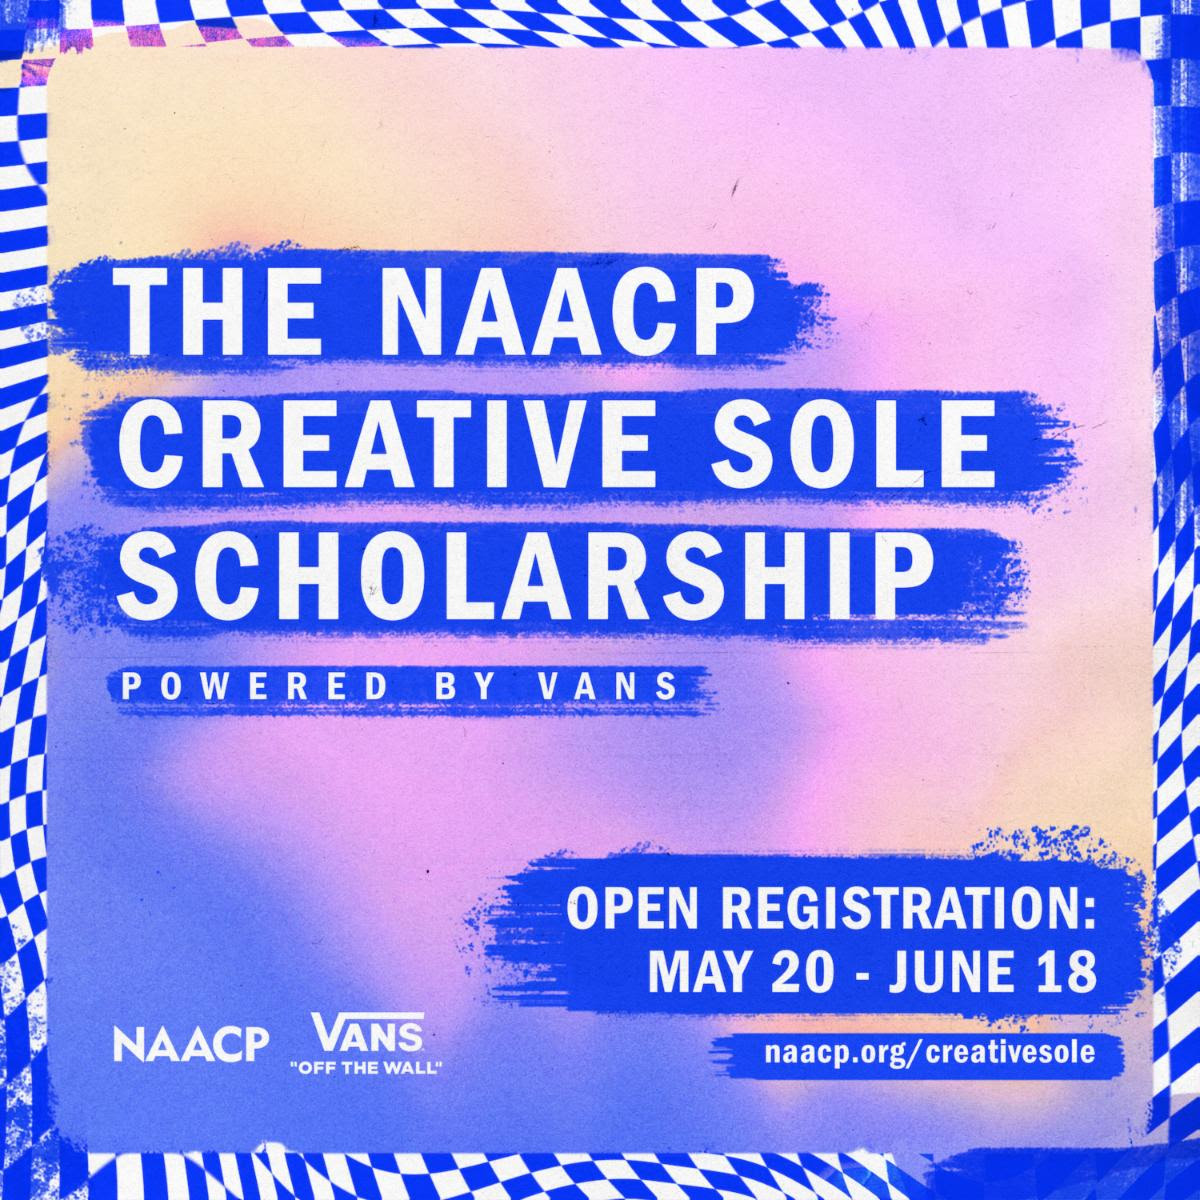 the naacp creative sole scholarship by vans